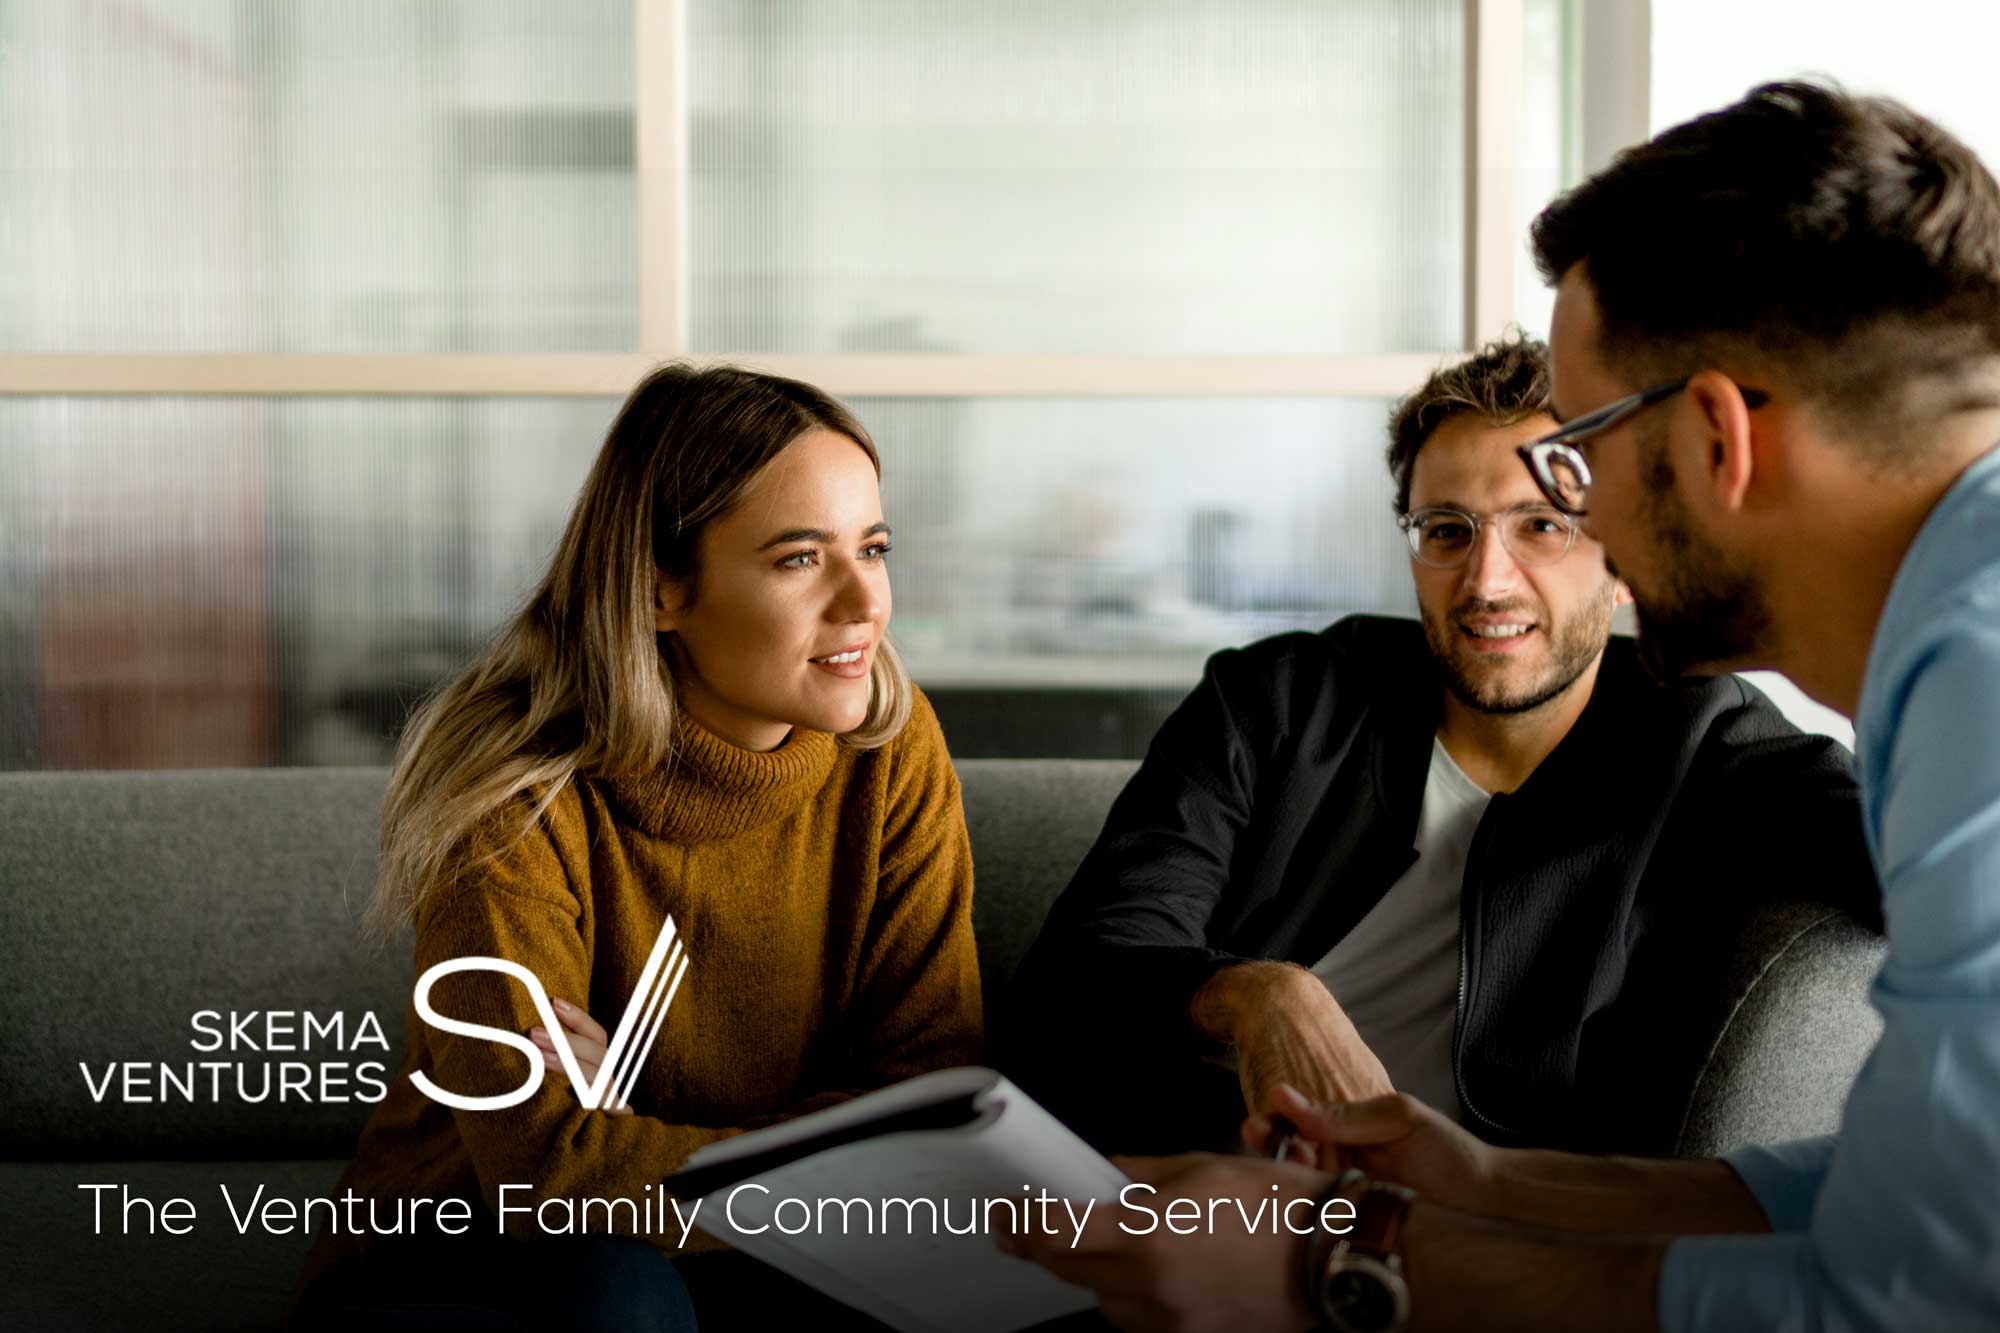 The Venture Family Community Service